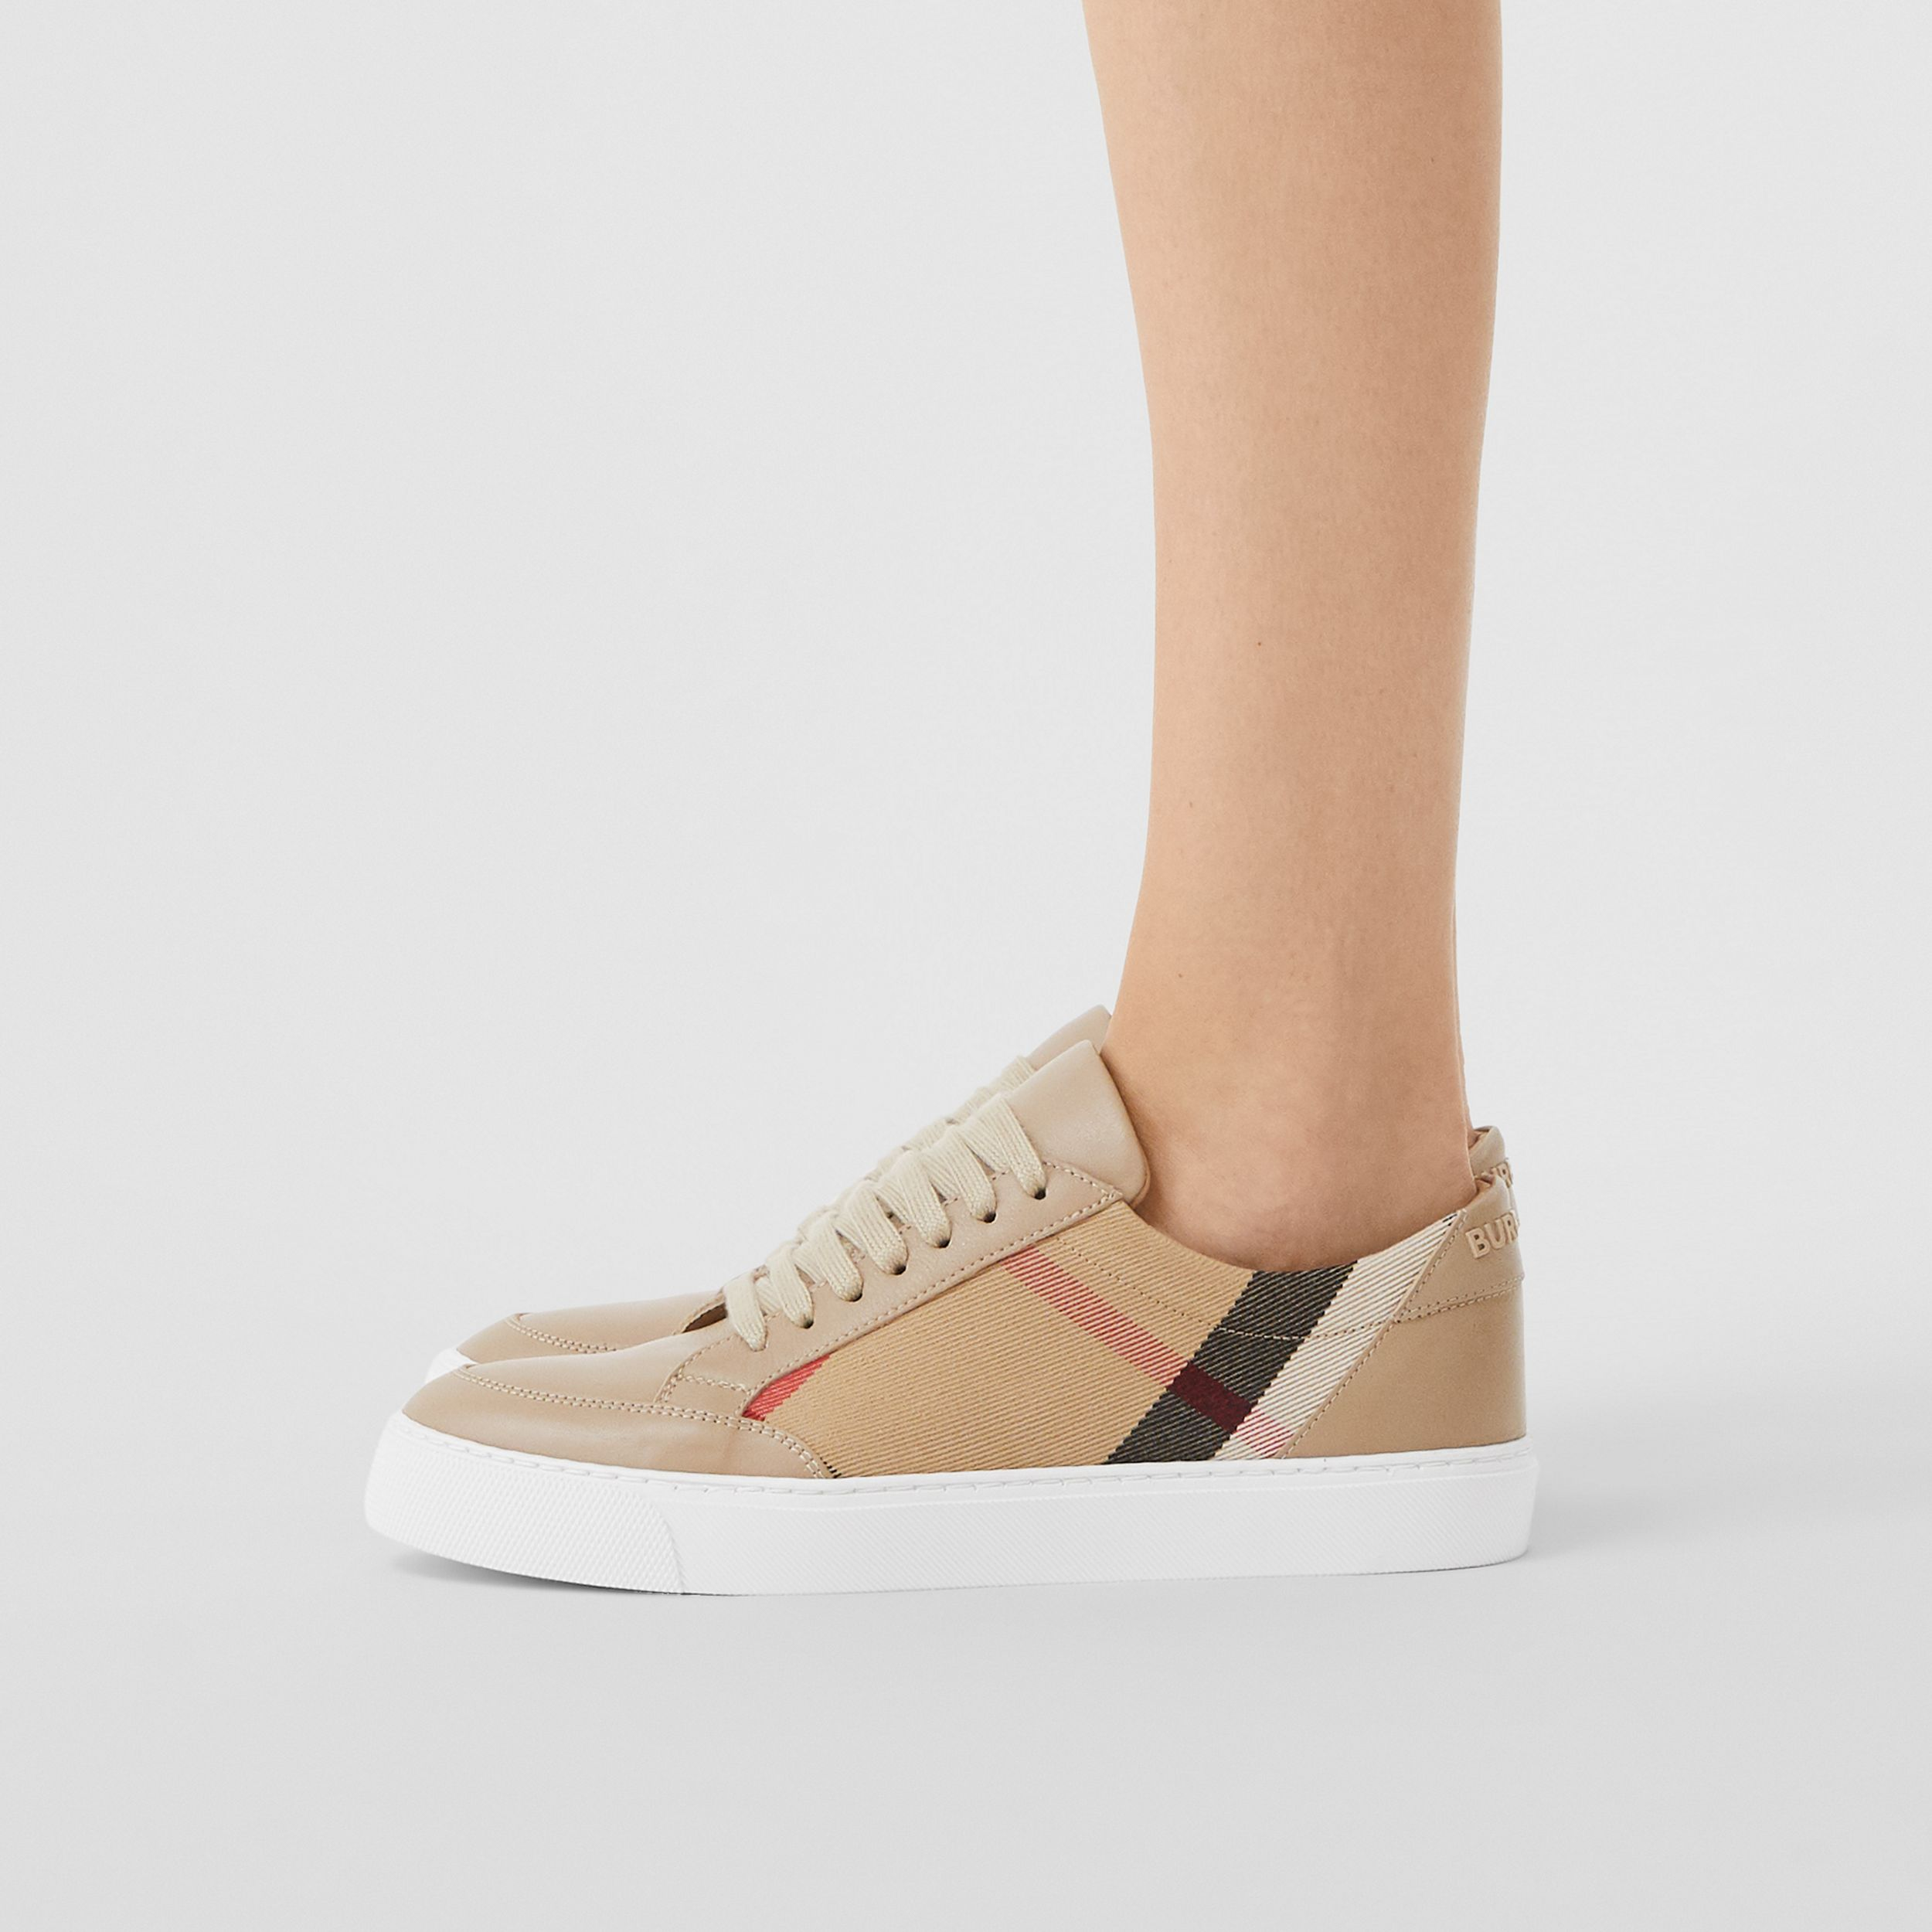 House Check and Leather Sneakers in Tan - Women | Burberry Canada - 3